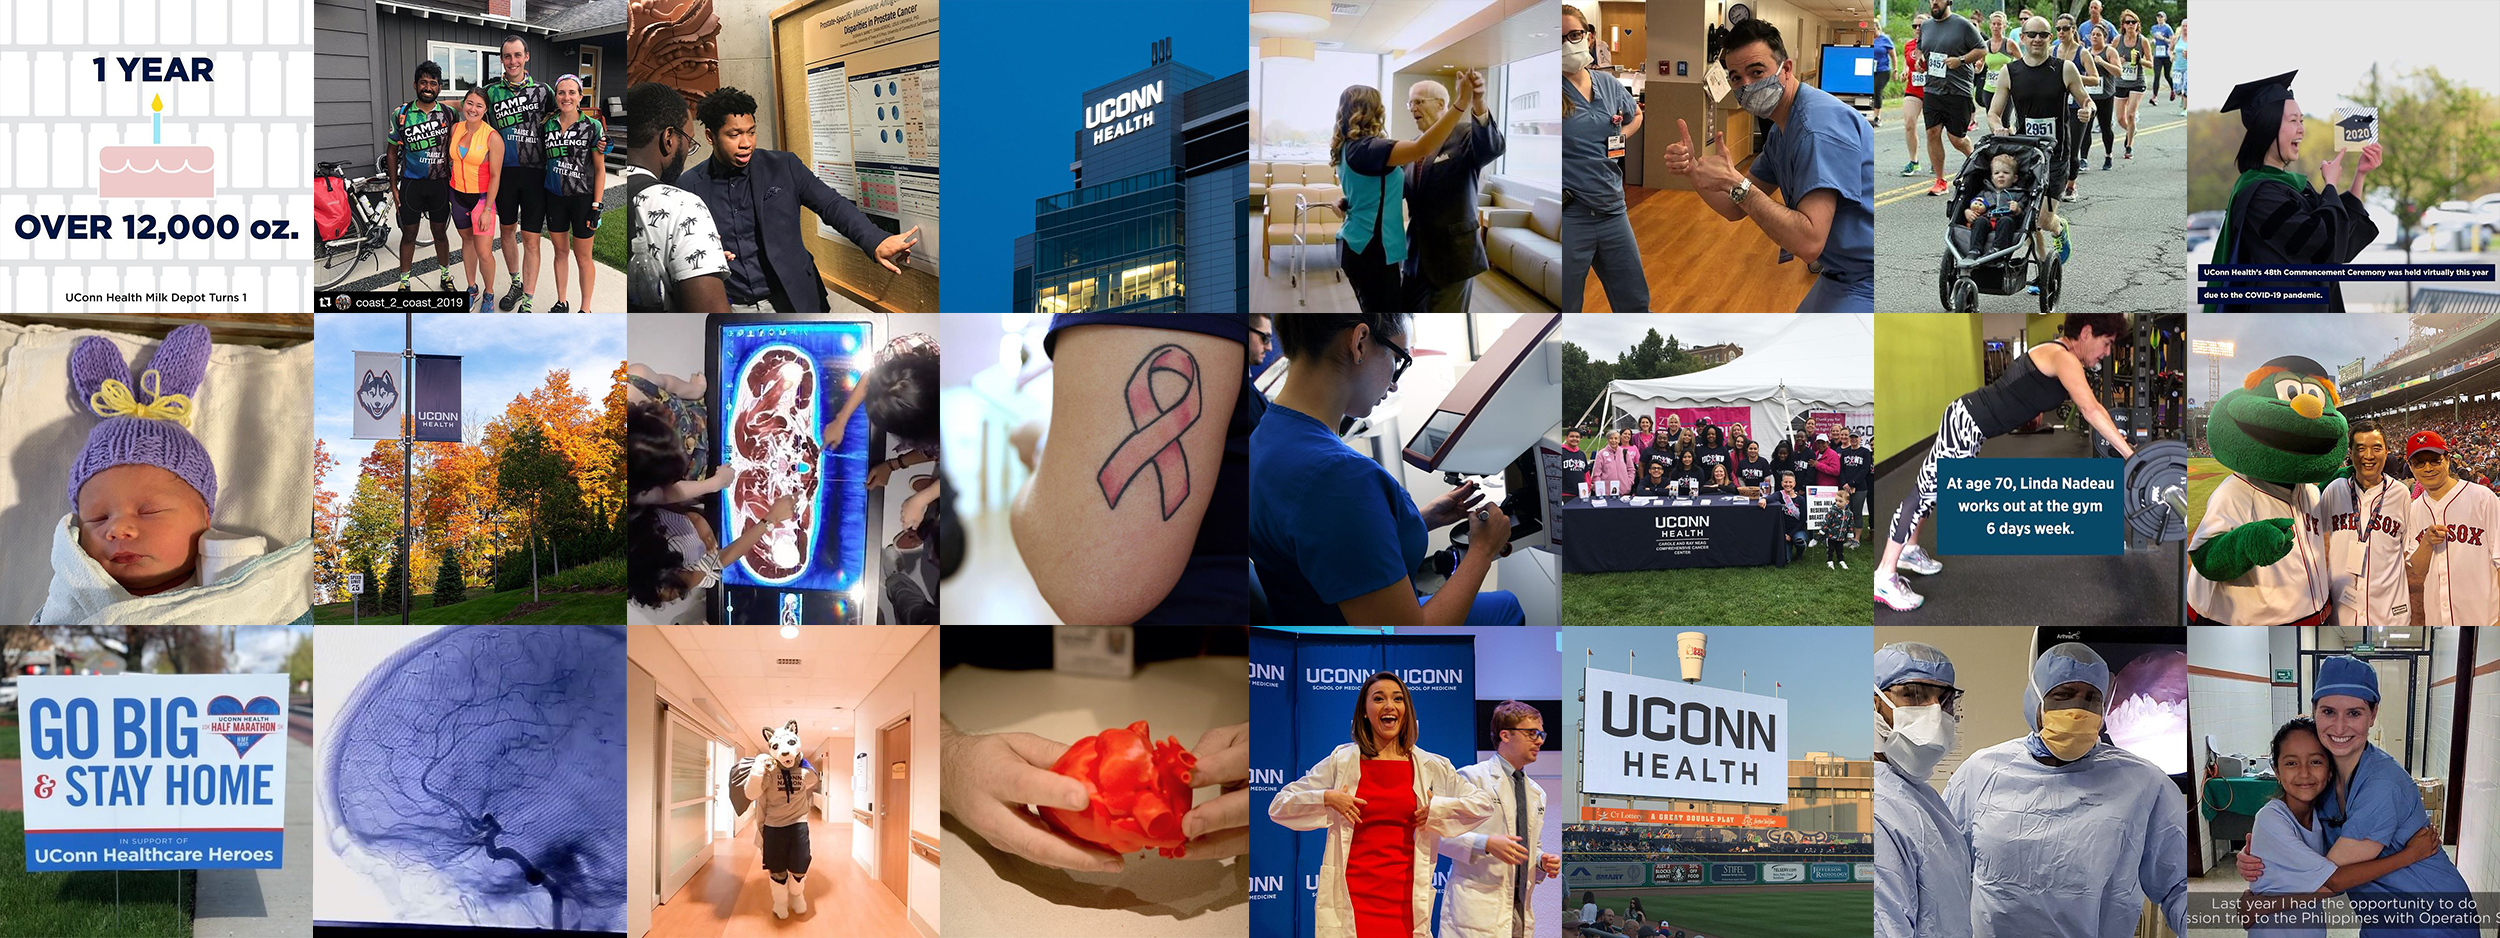 Collage of UConn Health Instagram photos